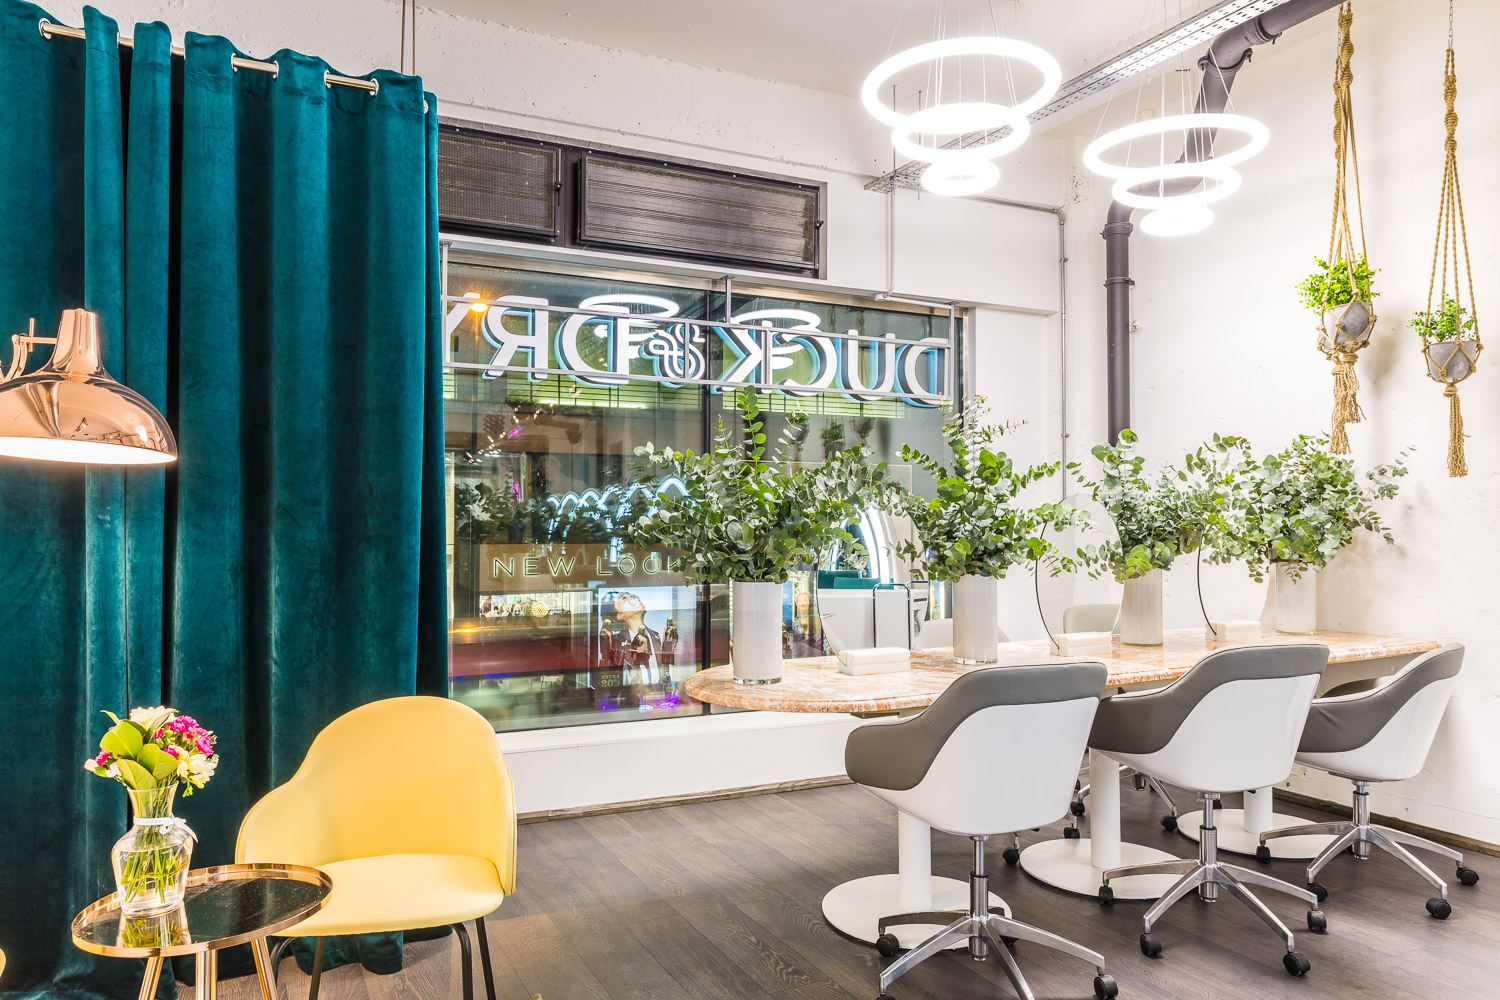 Duck & Dry - Duck & Dry is the brand behind the finest blow dries and updos in London. It's cool girl interior makes it the perfect place to relax and grab a processcco in. Duck & Dry has 5 London spaces as well as a brow and lash bar.